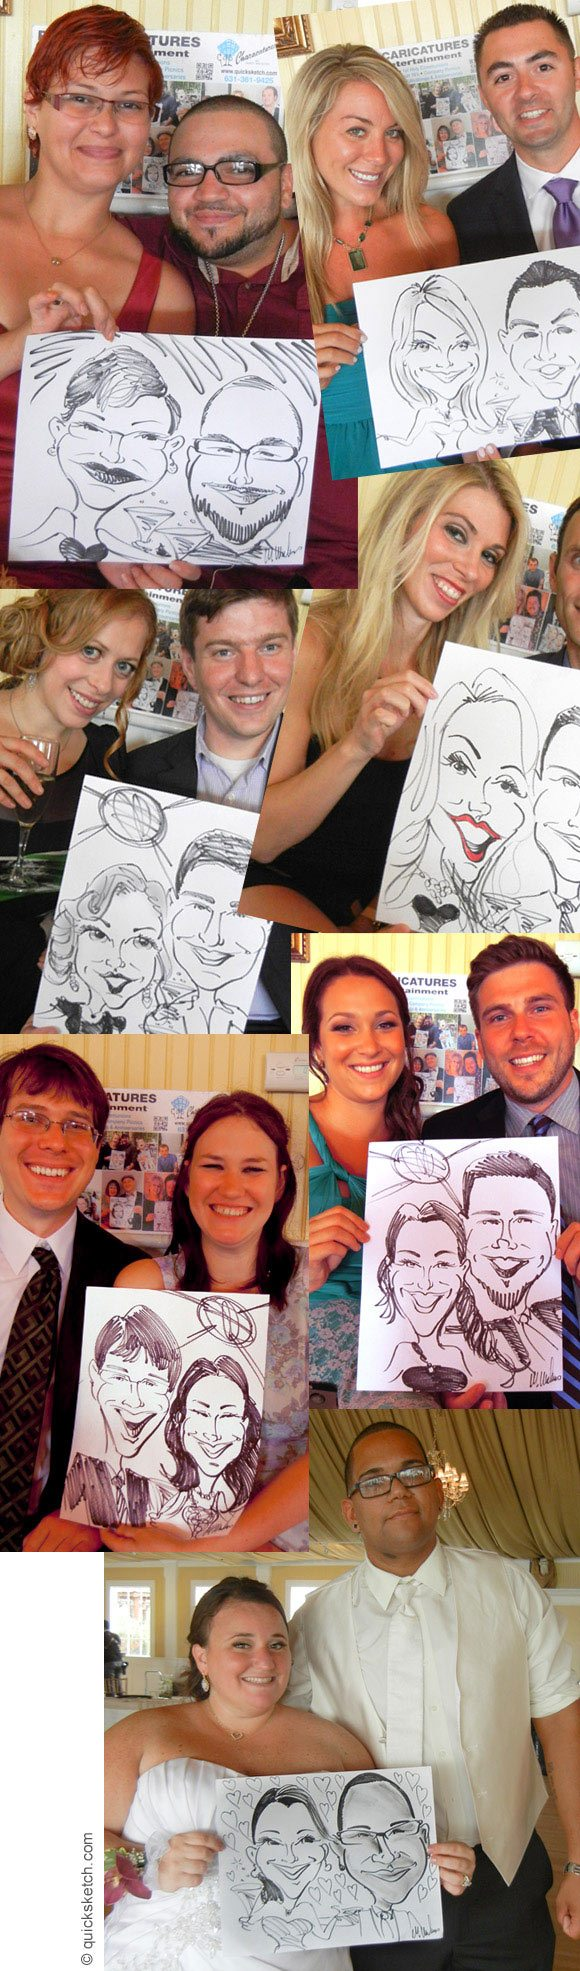 caricature artist for a wedding reception entertainment for wedding guests unusual wedding entertainment ideas USA metro ny area wedding caricatures sketch artist Bridgeview yacht club wedding caricatures caricature artist for bridal shower engagement party entertainment fun and entertaining giveaways for guests